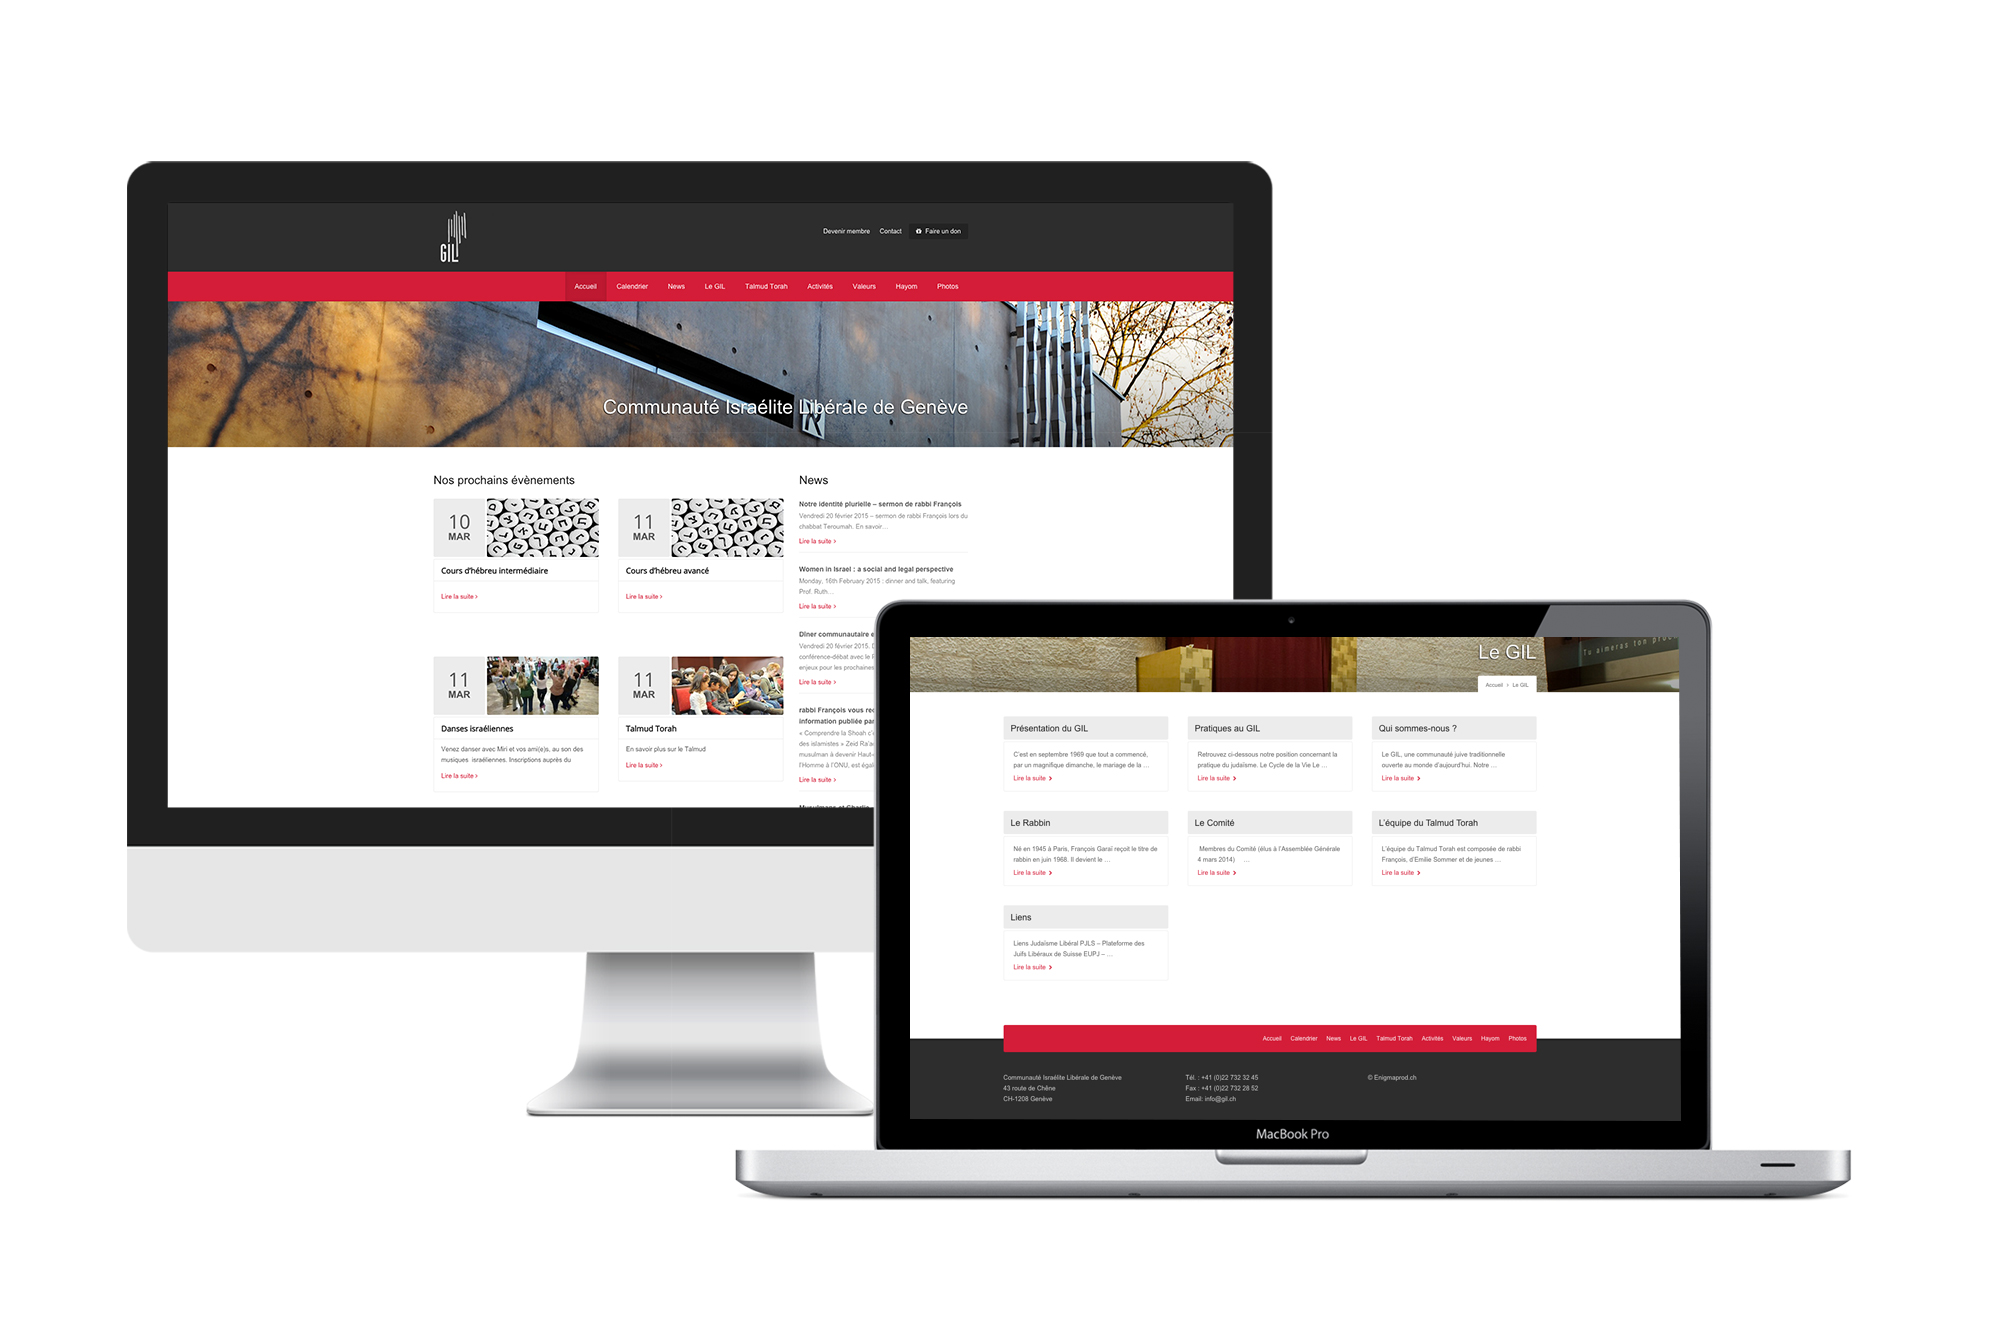 Display of the GIL website on desktop and laptop